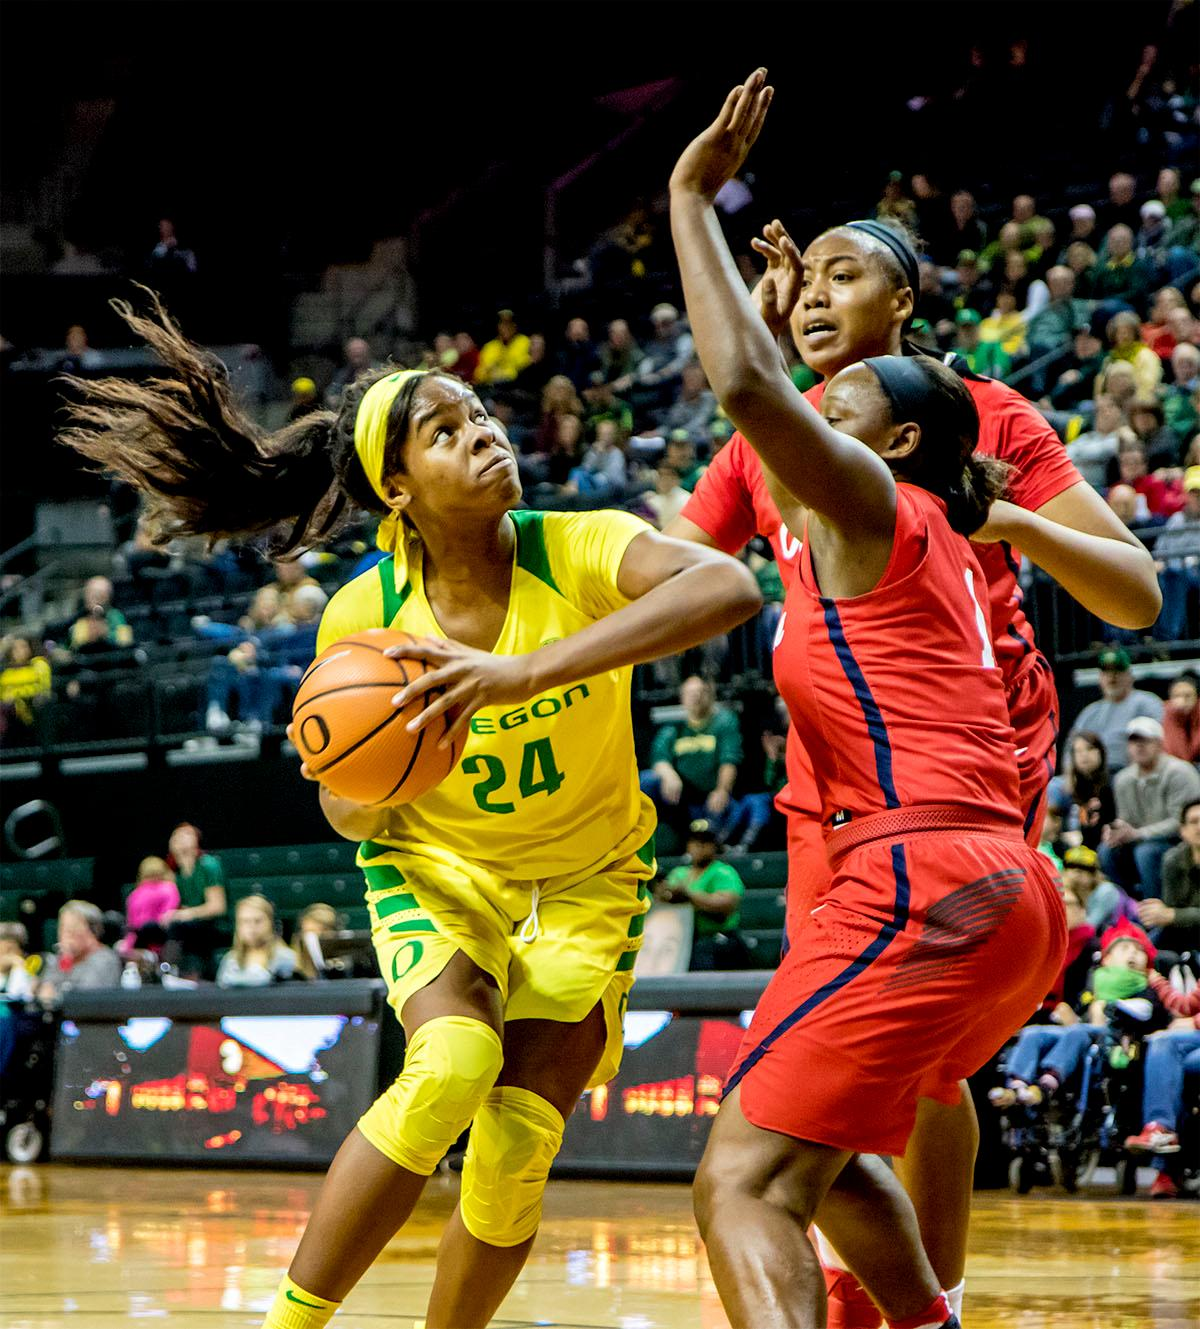 The Duck's Ruthy Hebard (#24) looks for a path to the basket around Rebels players. The Duck's Sabrina Ionescu (#20) is introduced at the start of the game against the Ole Miss Rebels. The Oregon Ducks womens basketball team defeated the Ole Miss Rebels 90-46 on Sunday at Matthew Knight Arena. Sabrina Ionescu tied the NCAA record for triple-doubles, finishing the game with 21 points, 14 assists, and 11 rebounds. Ruthy Hebard added 16 points, Satou Sabally added 12, and both Lexi Bando and Maite Cazorla scored 10 each. The Ducks will next face off against Texas A&M on Thursday Dec. 21 and Hawaii on Friday Dec. 22 in Las Vegas for Duel in the Desert before the start of Pac-12 games. Photo by August Frank, Oregon News Lab